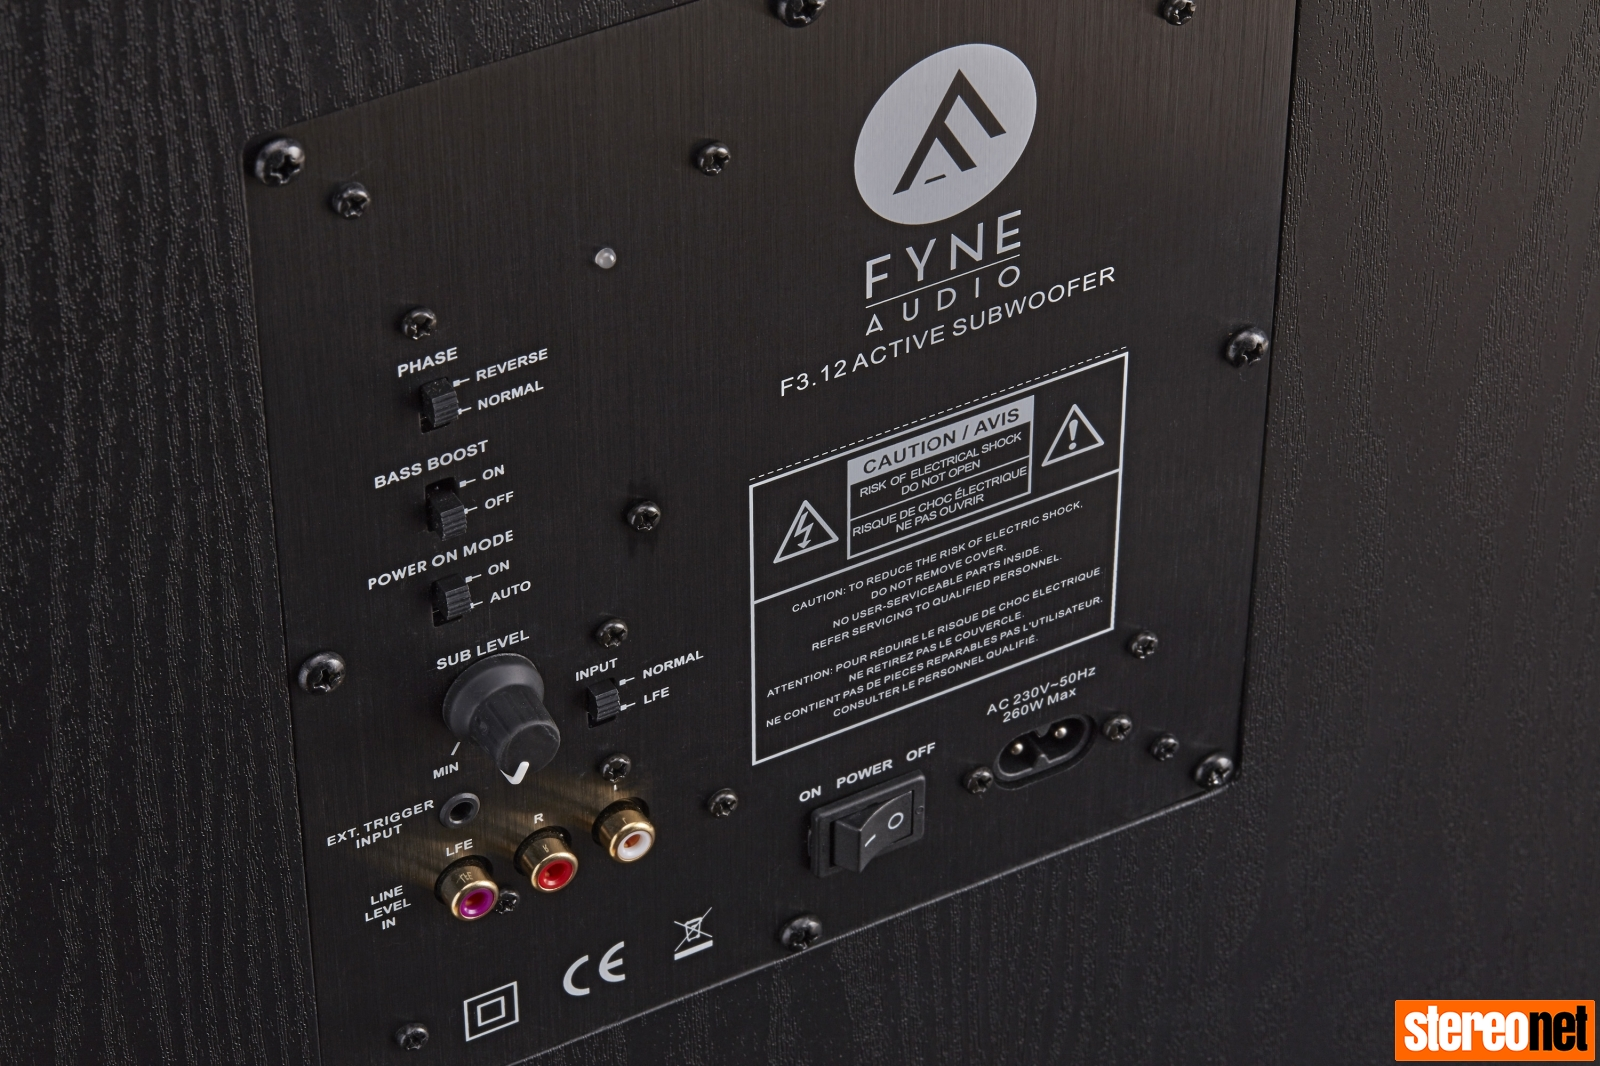 Fyne Audio F3 subwoofer rear panel